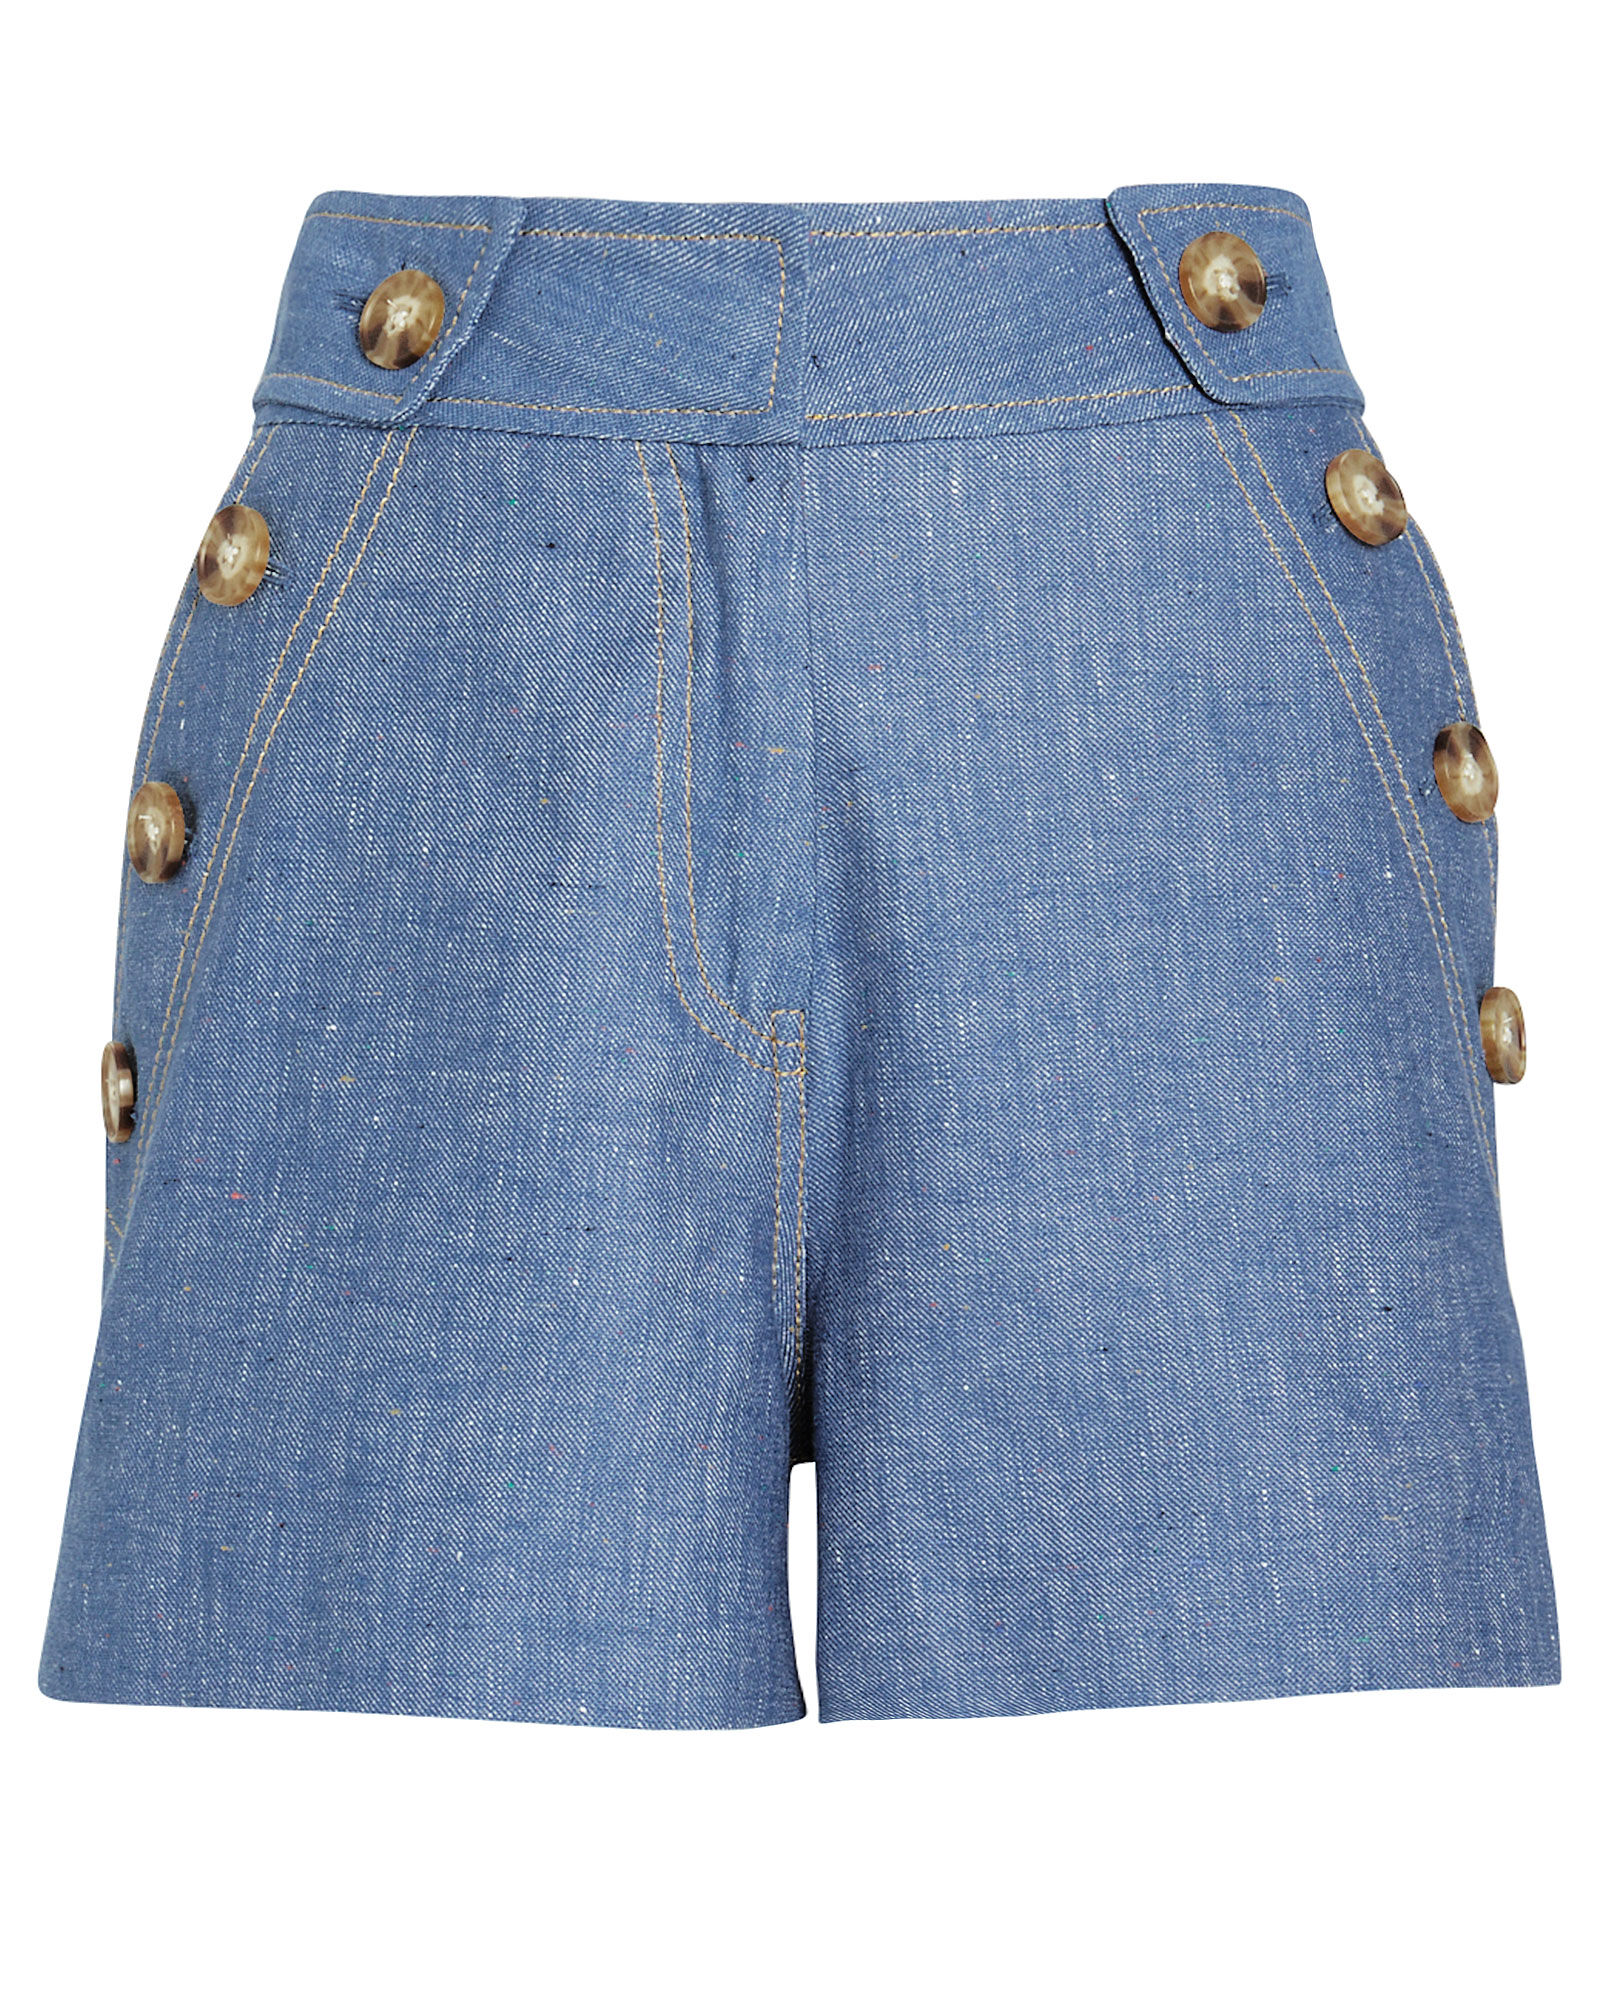 High Rise Cotton-Linen Shorts, NAVY, hi-res